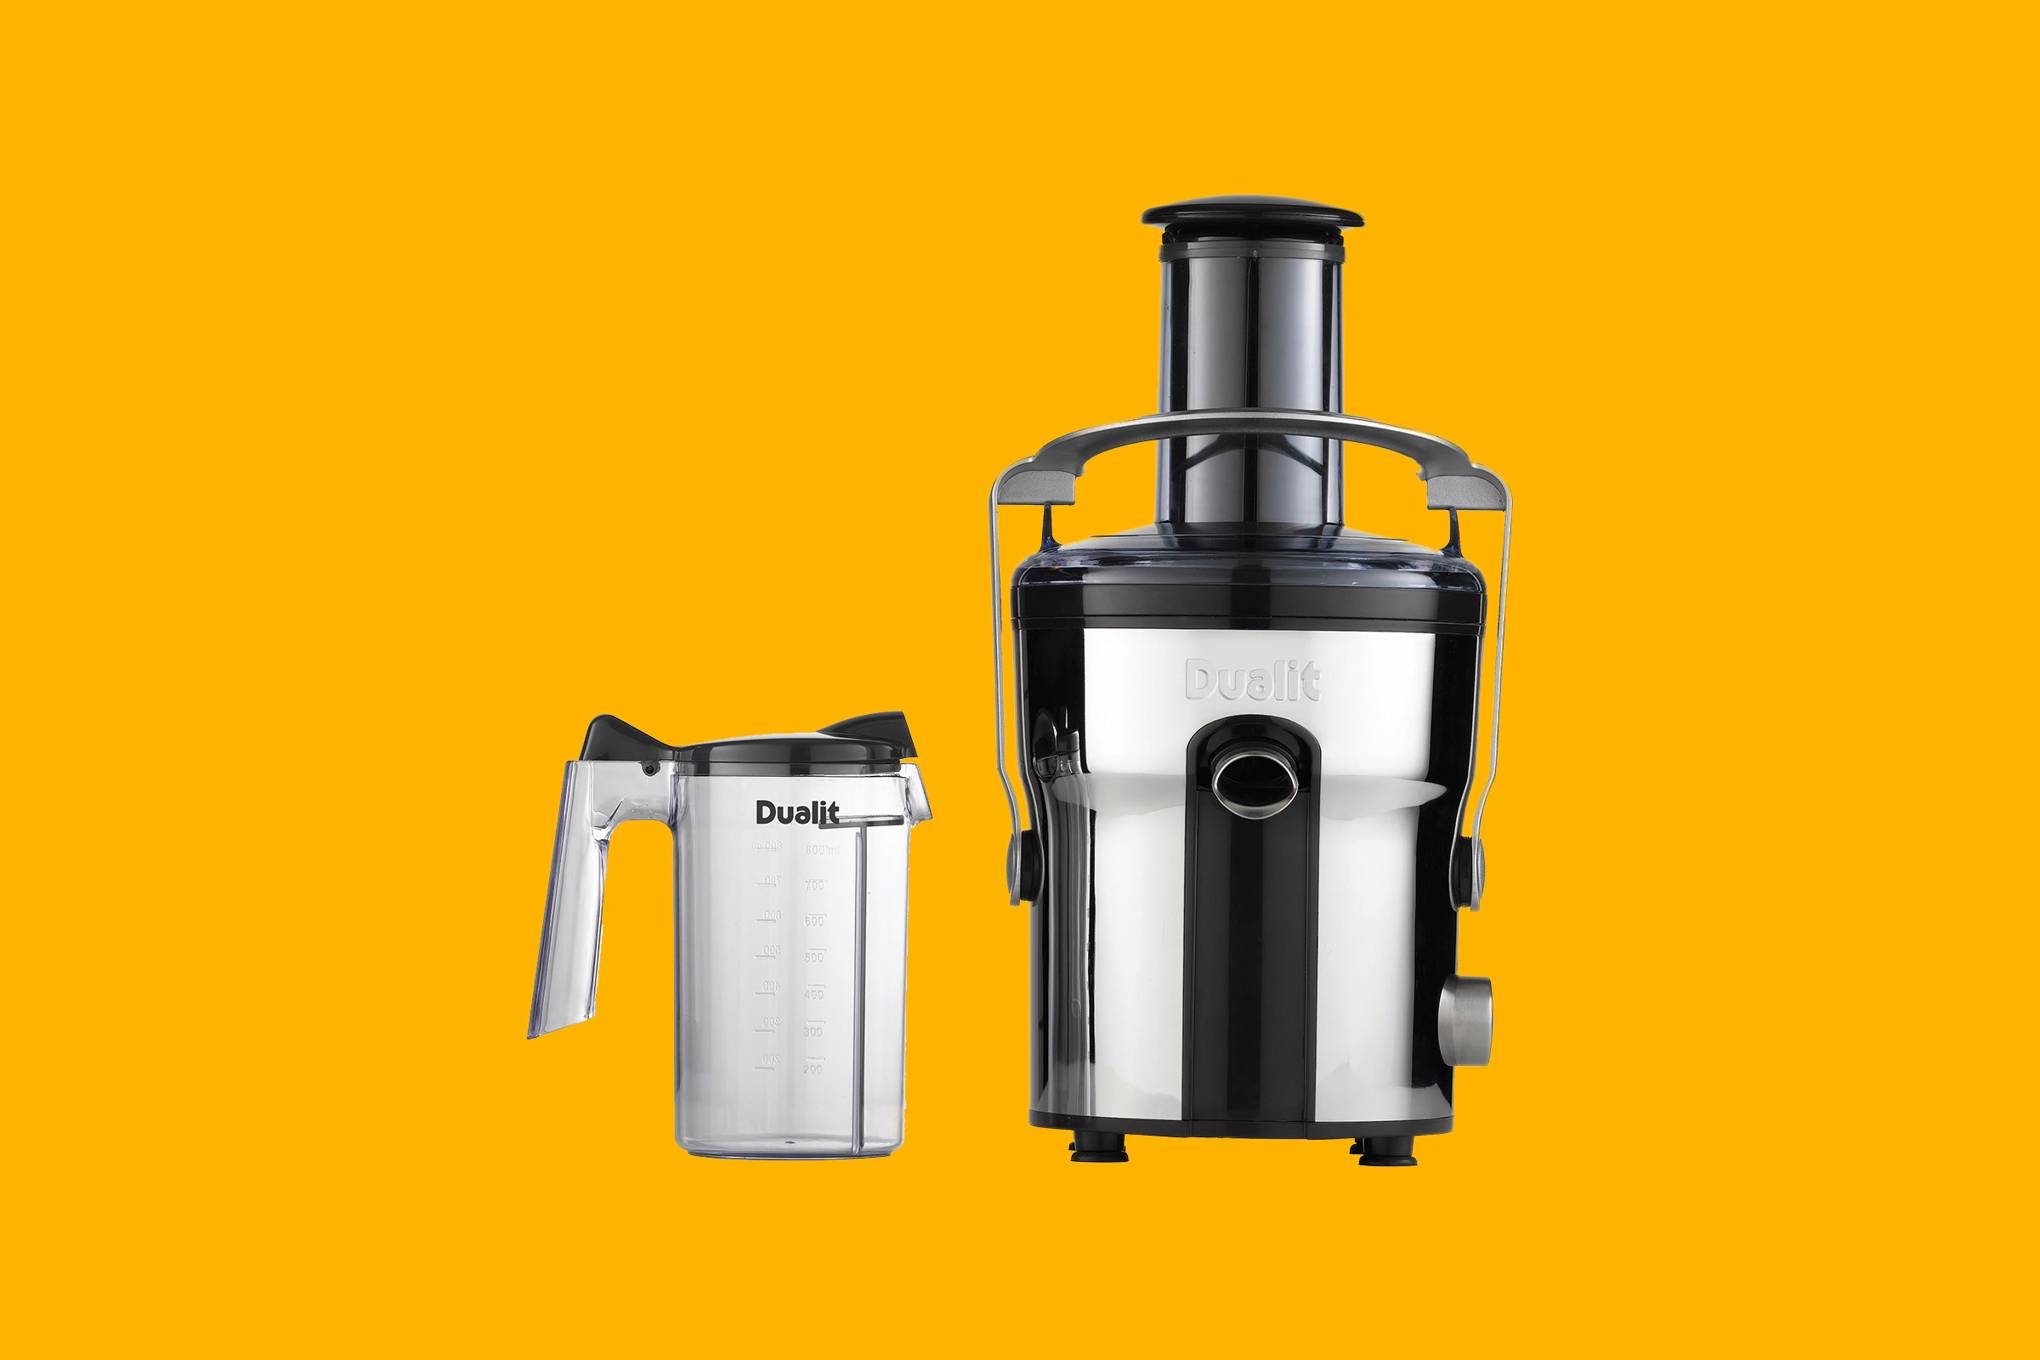 Best Juicer 2020: The best juicers on the market in 2020